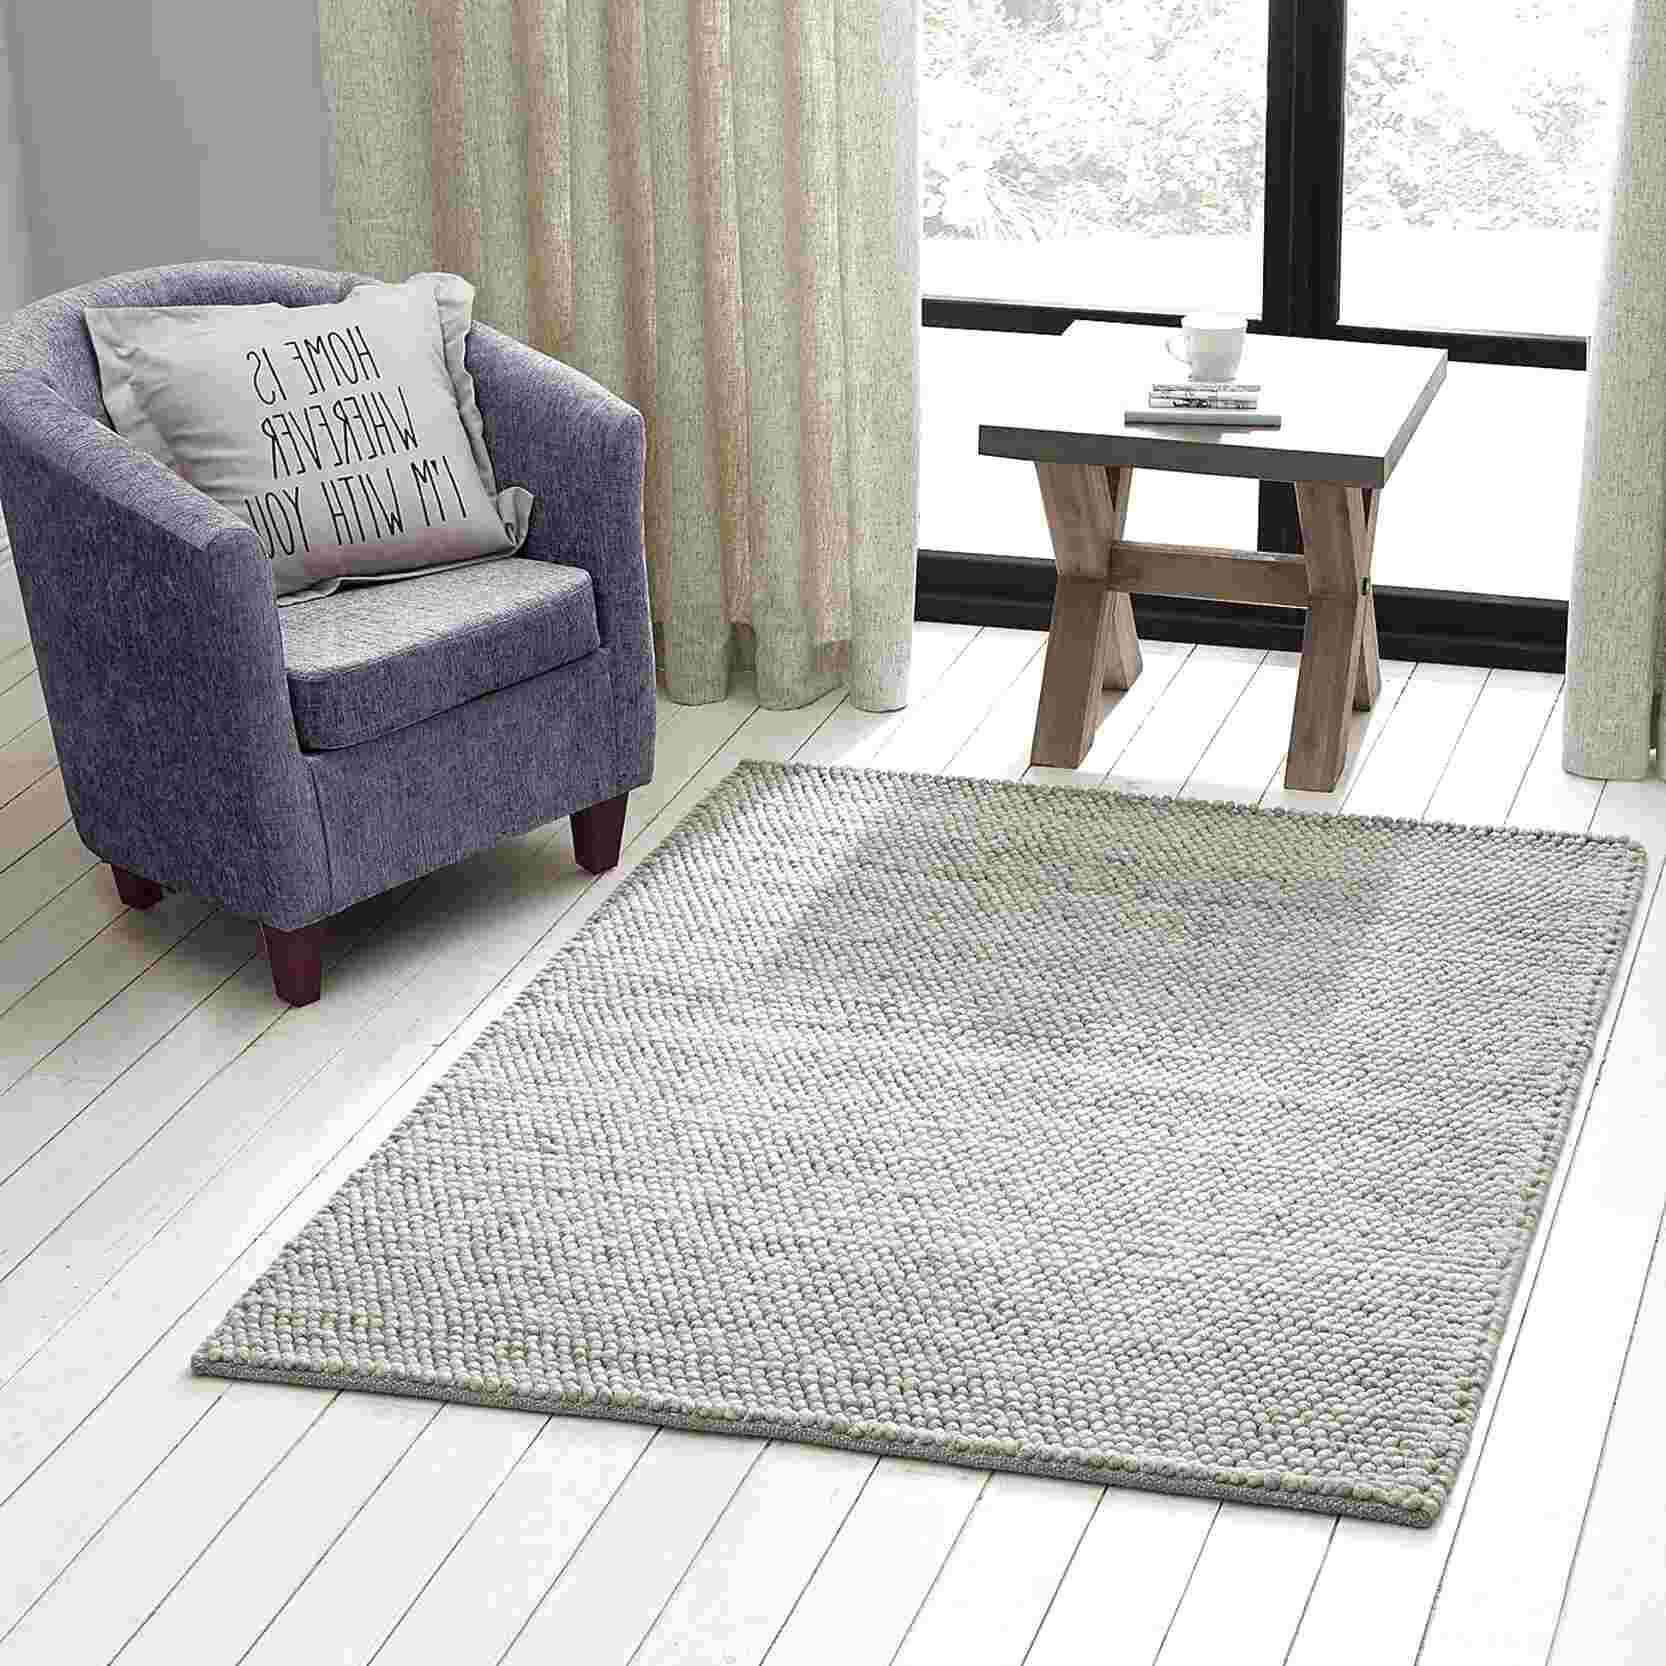 Dunelm Rug For Sale In Uk 84 Second Hand Dunelm Rugs